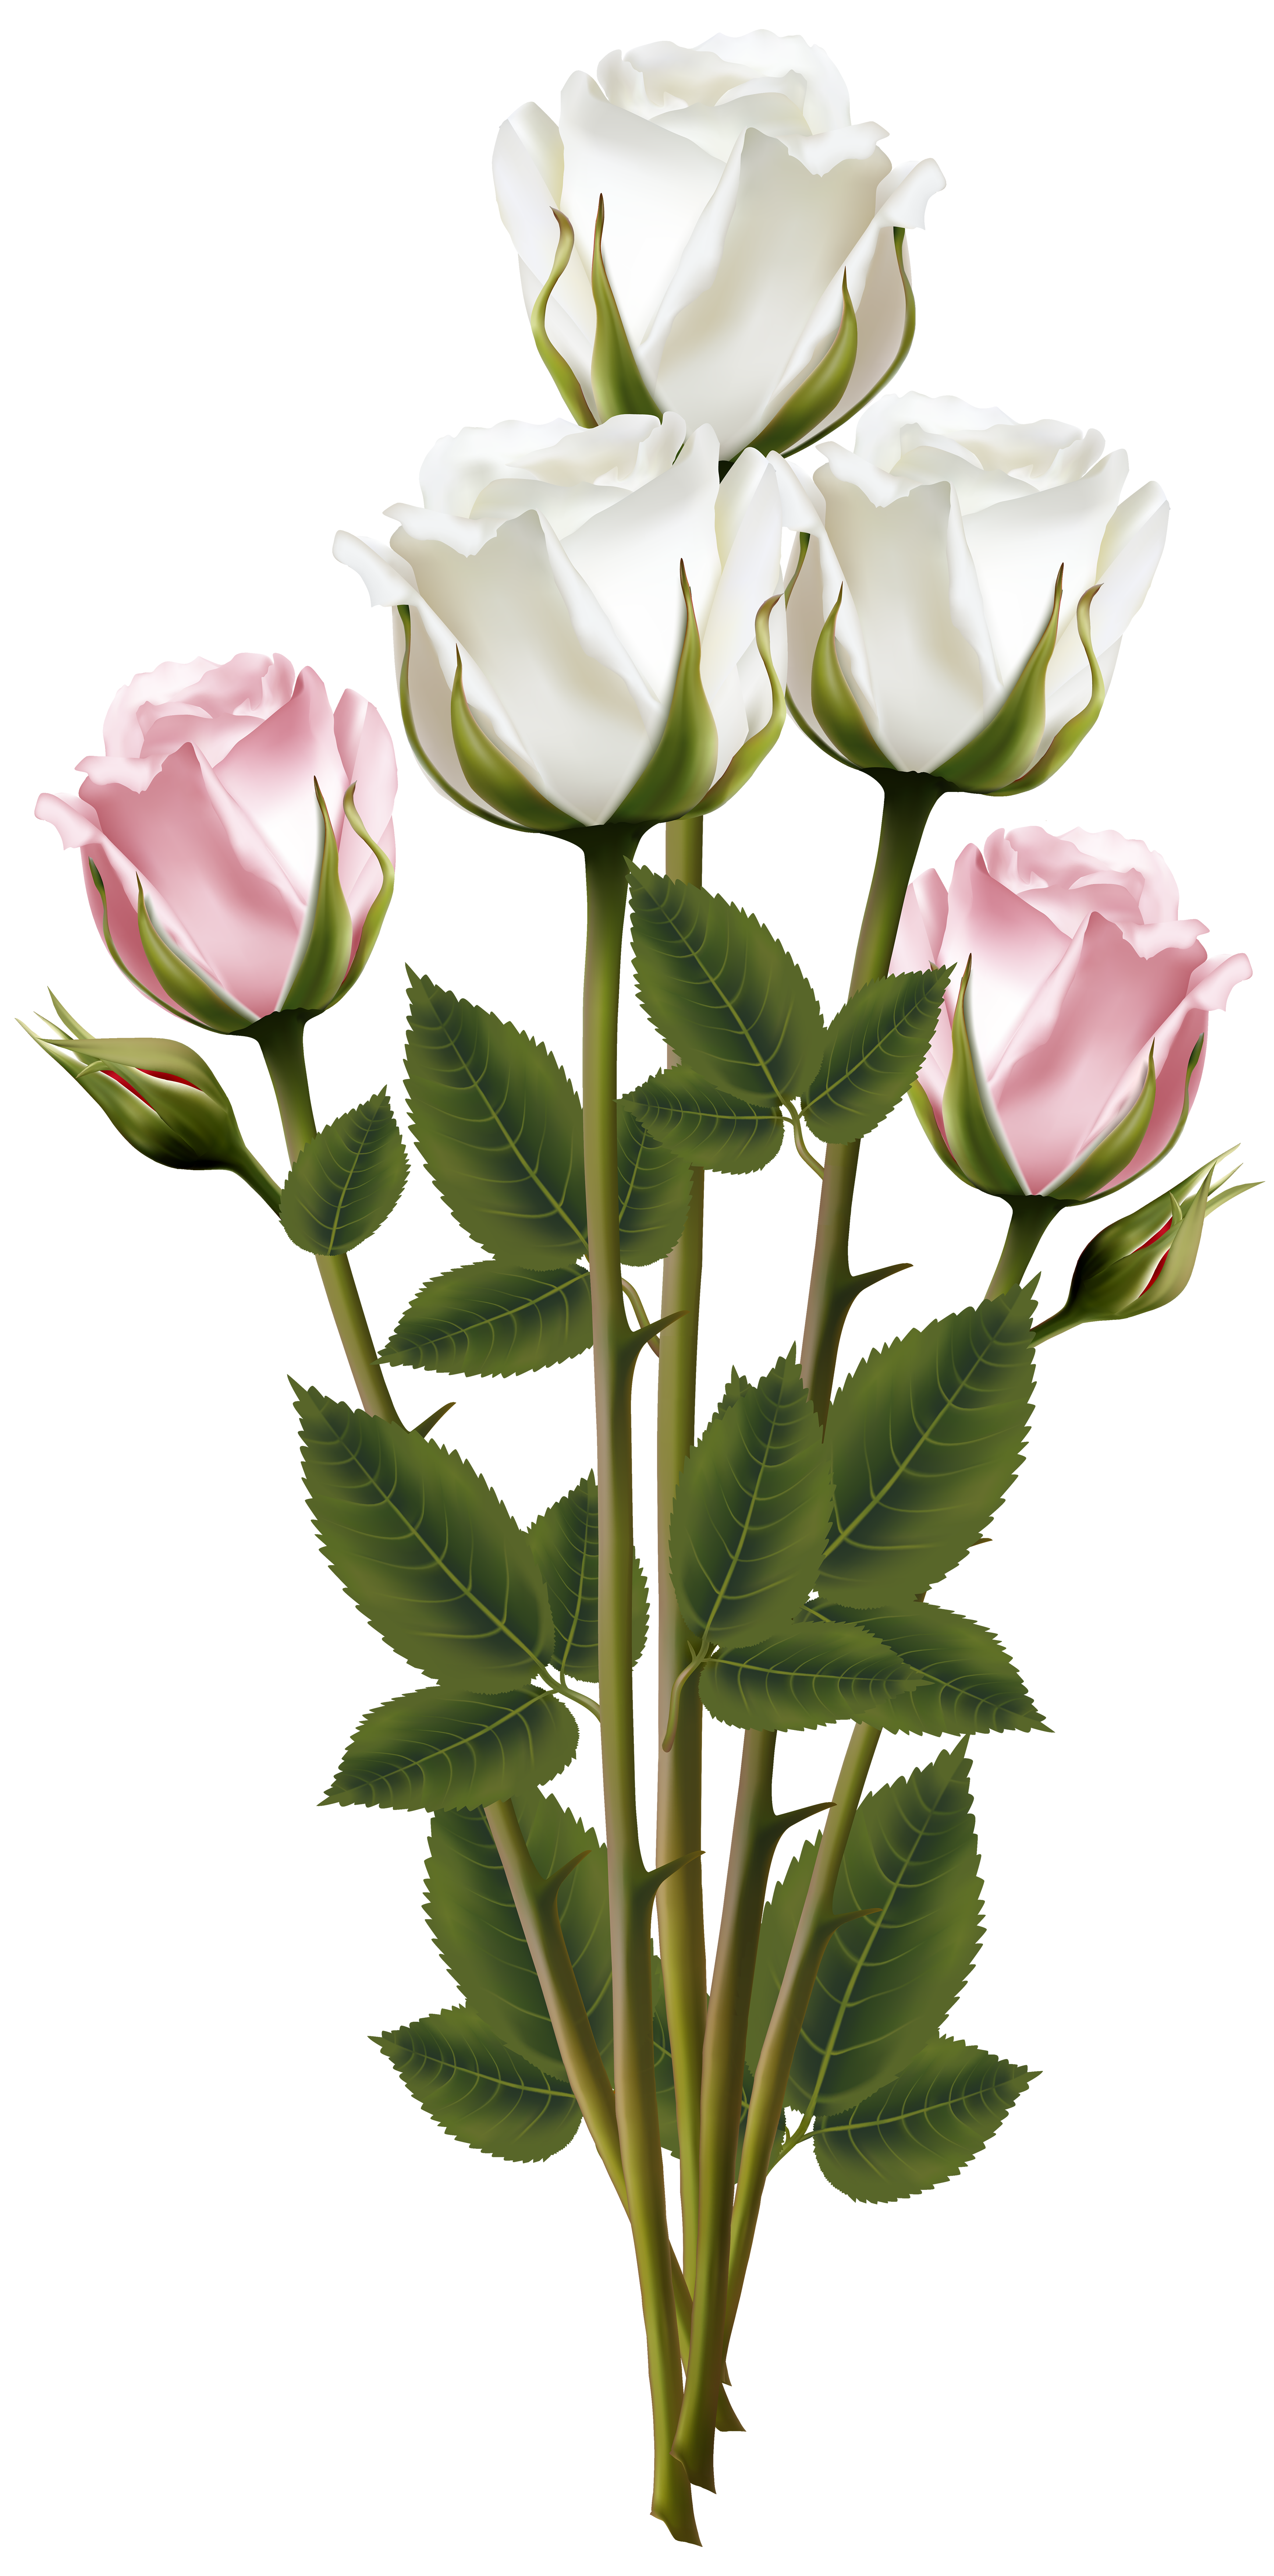 White and Pink Rose Bouquet Transparent PNG Clip Art Image.